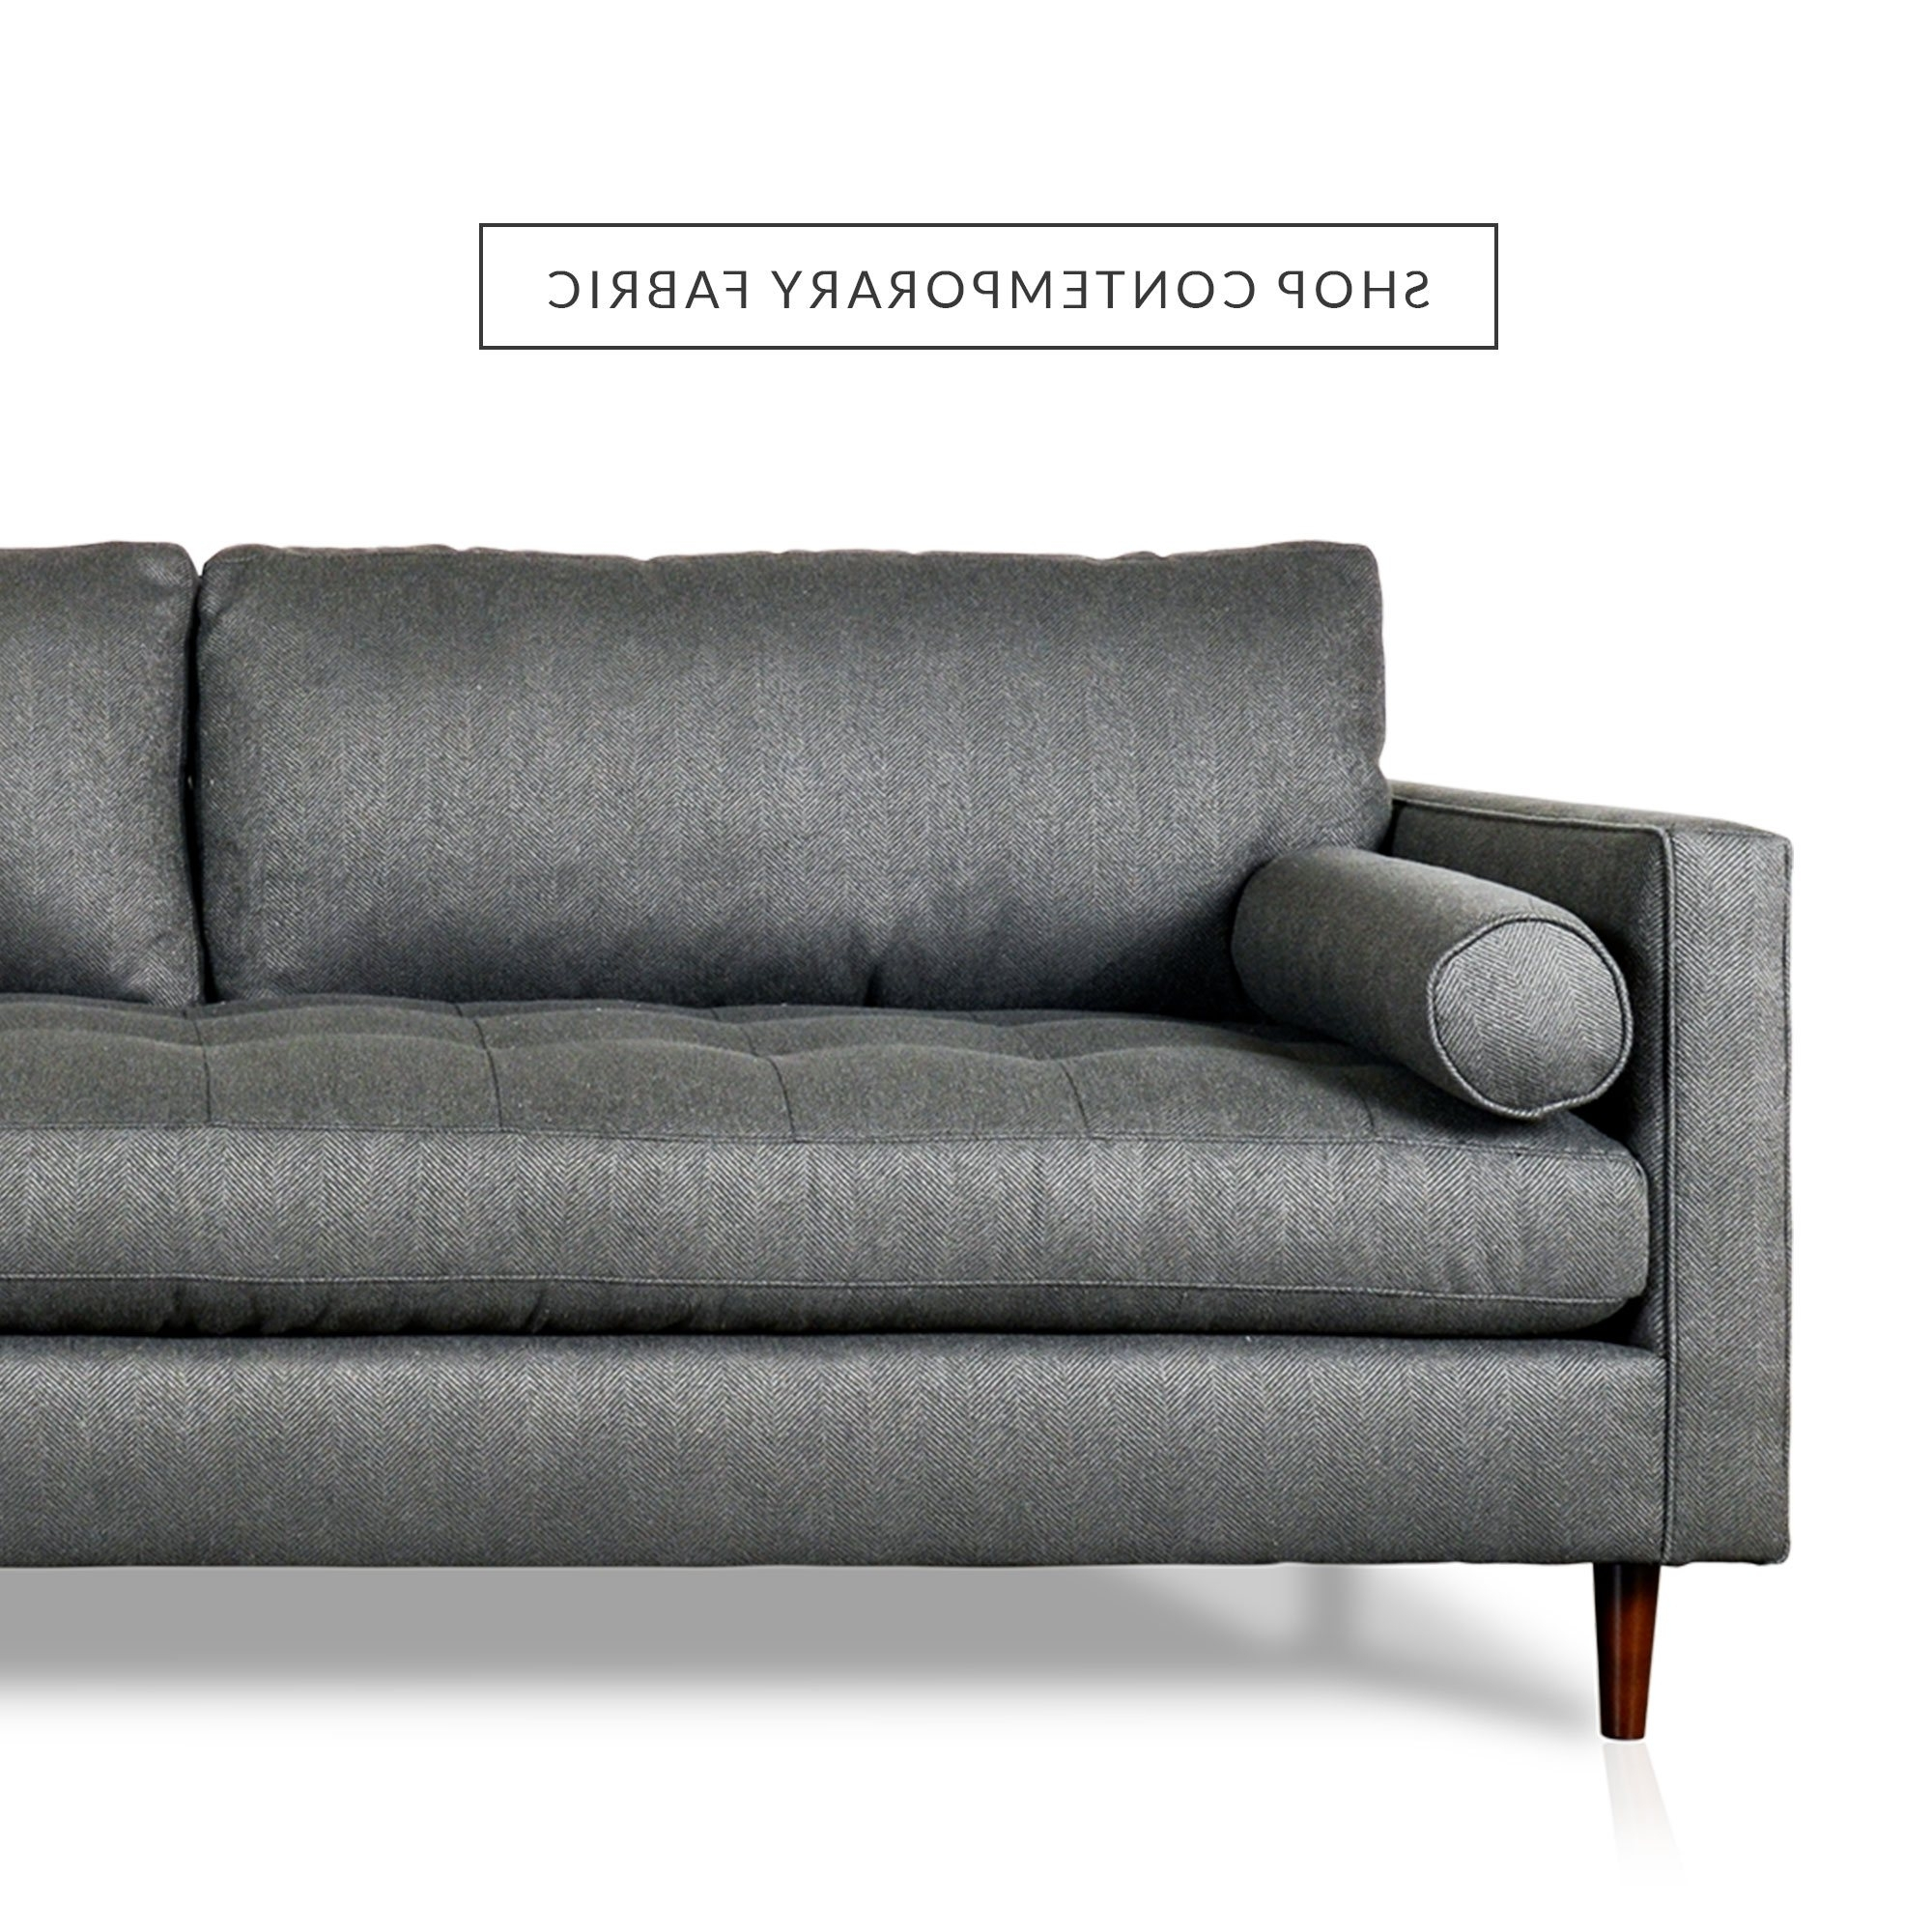 Chesterfield Sofas, Modern Furniture Made In Usa (View 11 of 20)